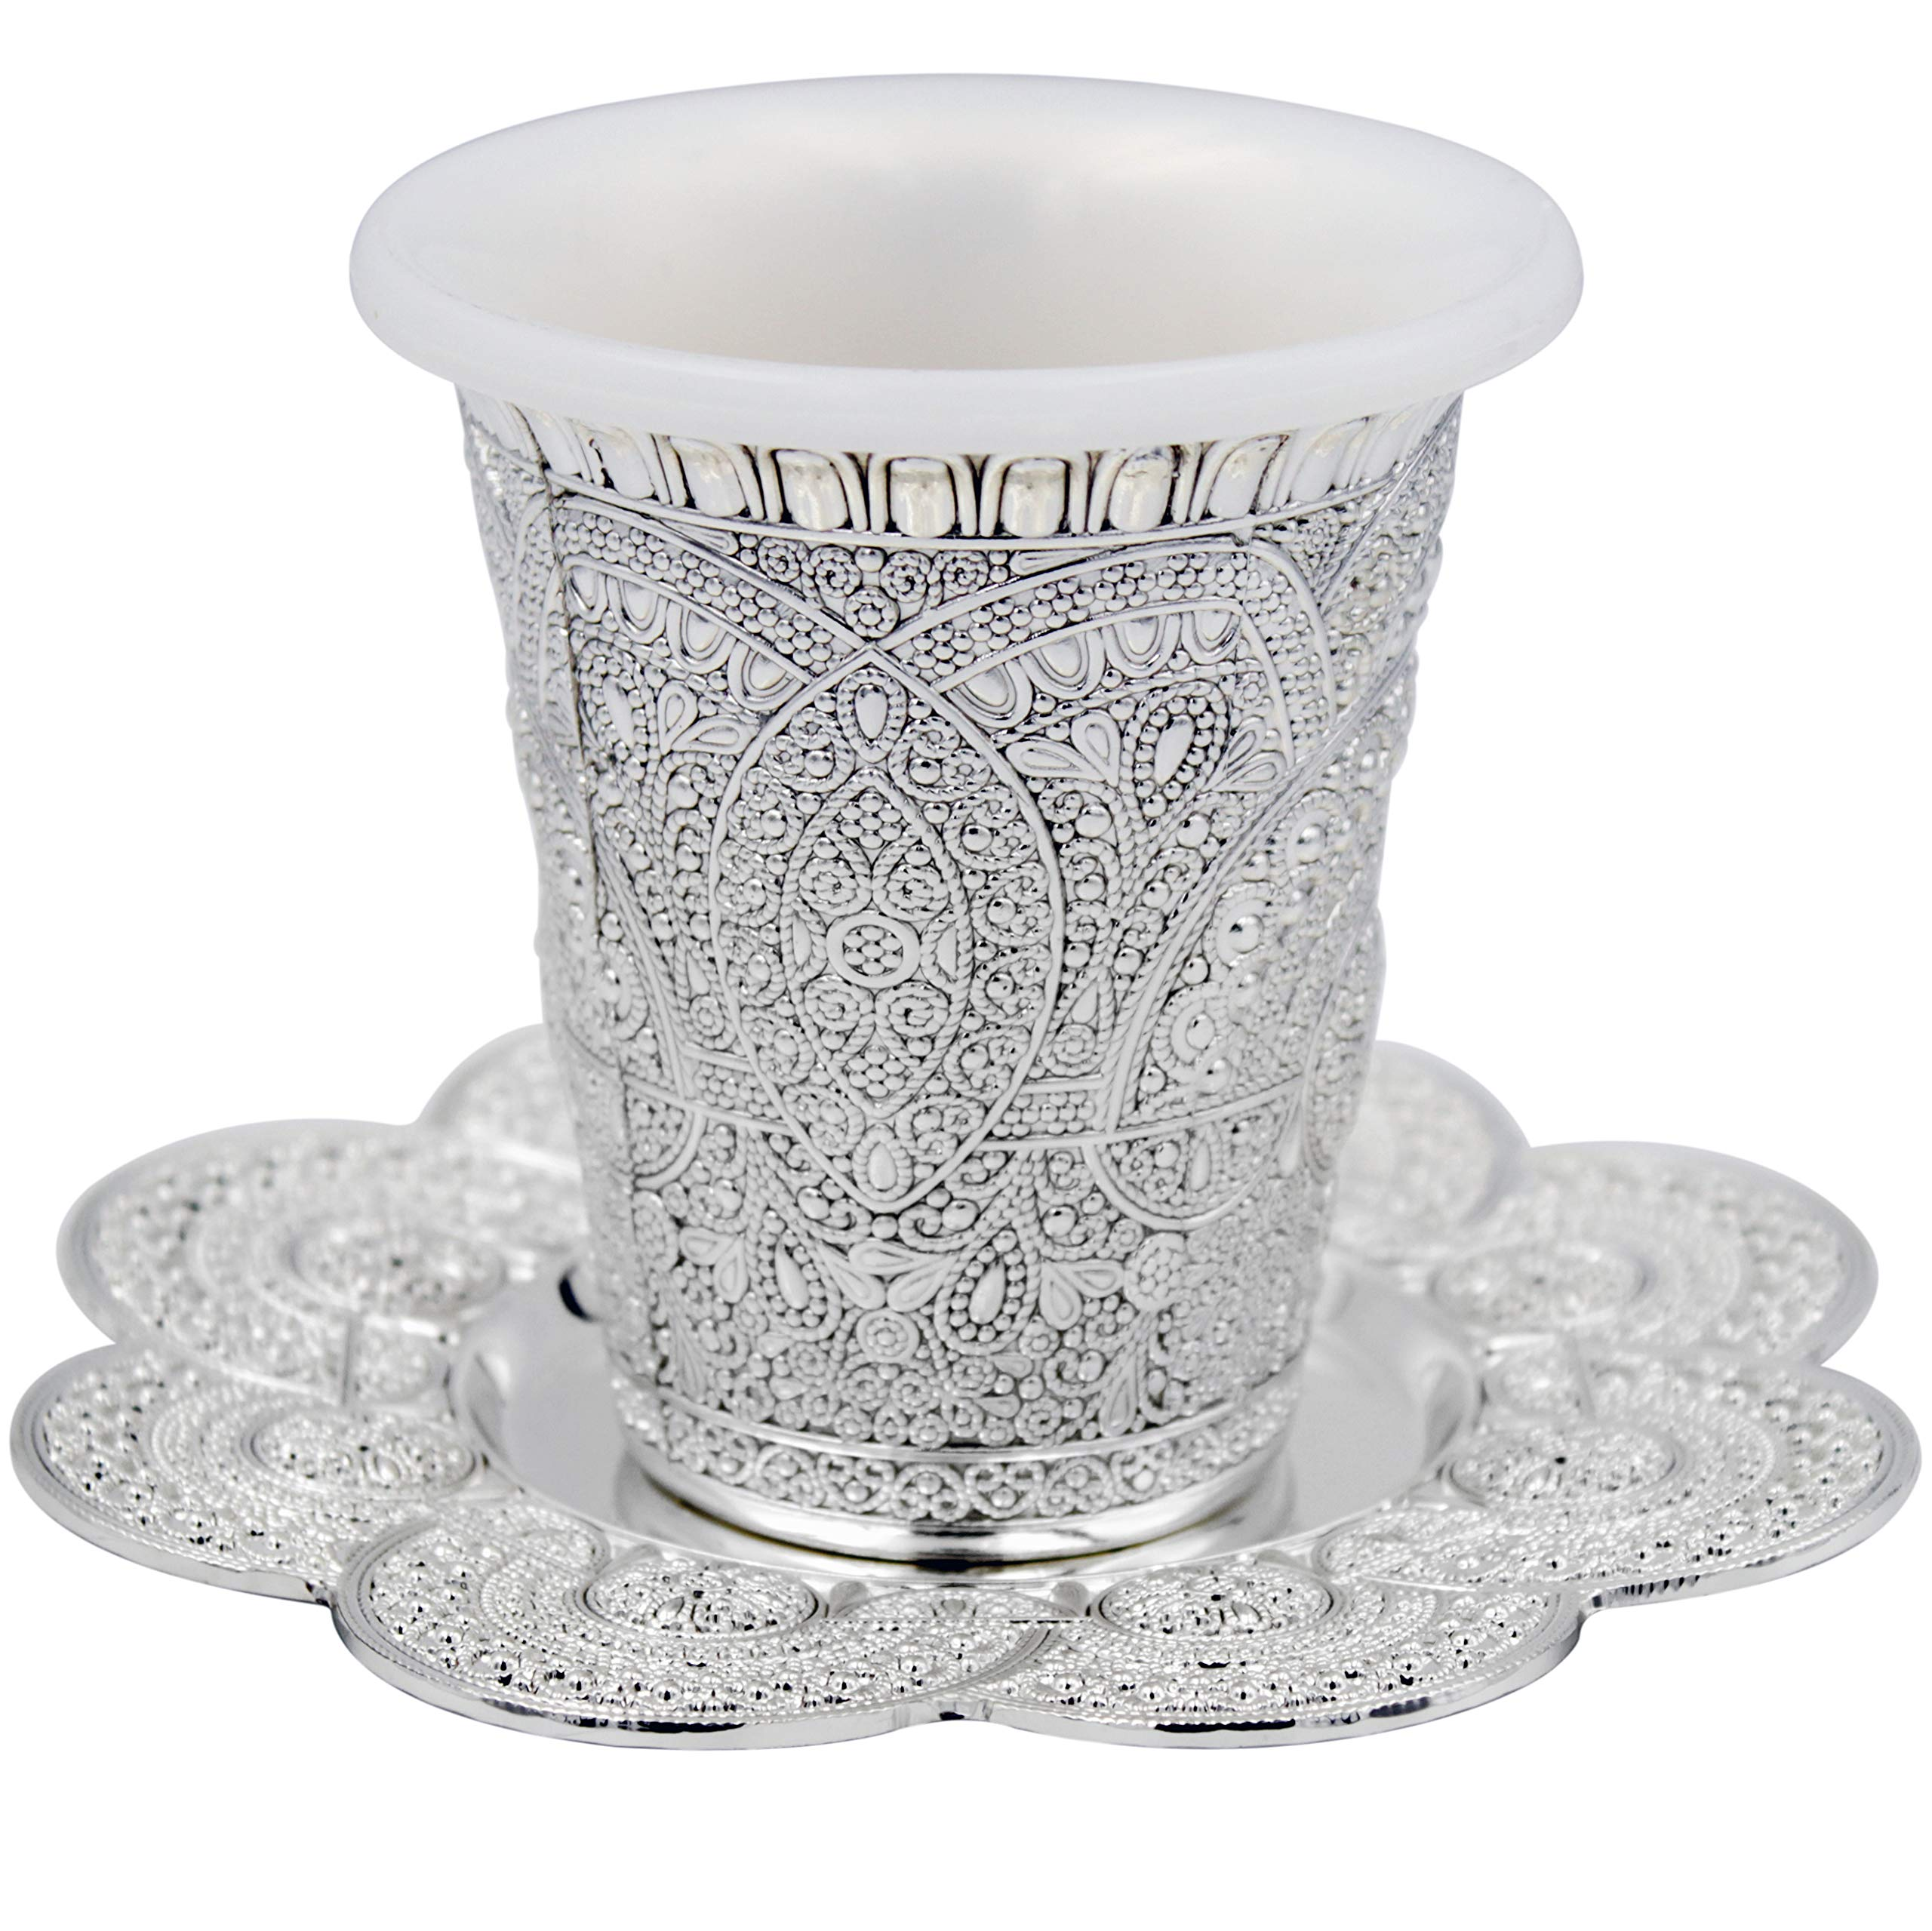 Kiddush Cup With Plate, Silver Plated Elegant Ornate Design 3.8 In.